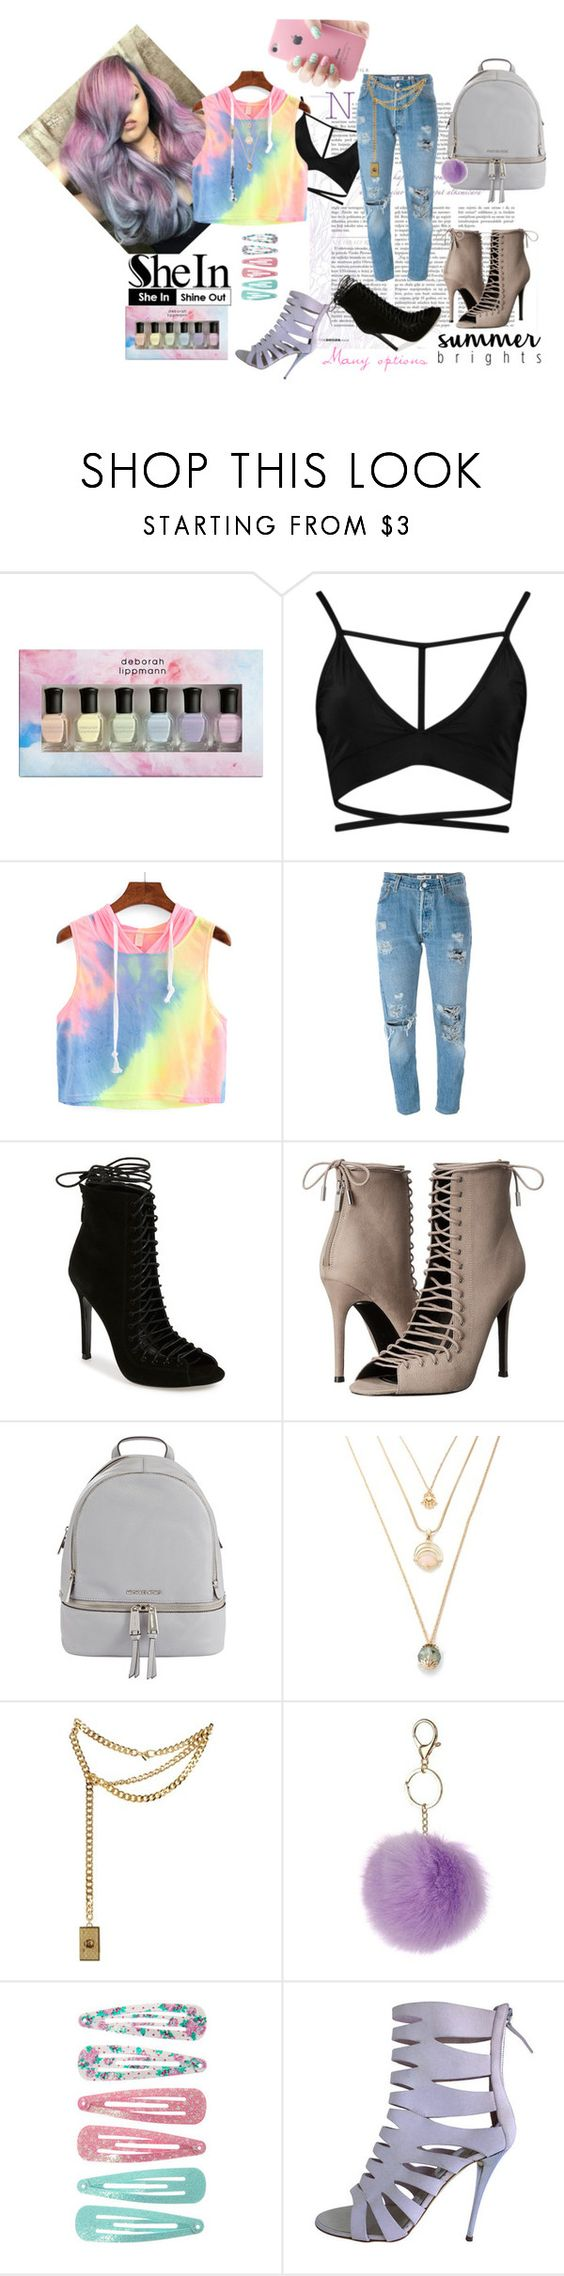 """Iris Top SheIn"" by natzumys ❤ liked on Polyvore featuring Deborah Lippmann, Levi's, Kendall + Kylie, MICHAEL Michael Kors, Moschino, Dorothy Perkins, claire's and Giuseppe Zanotti"